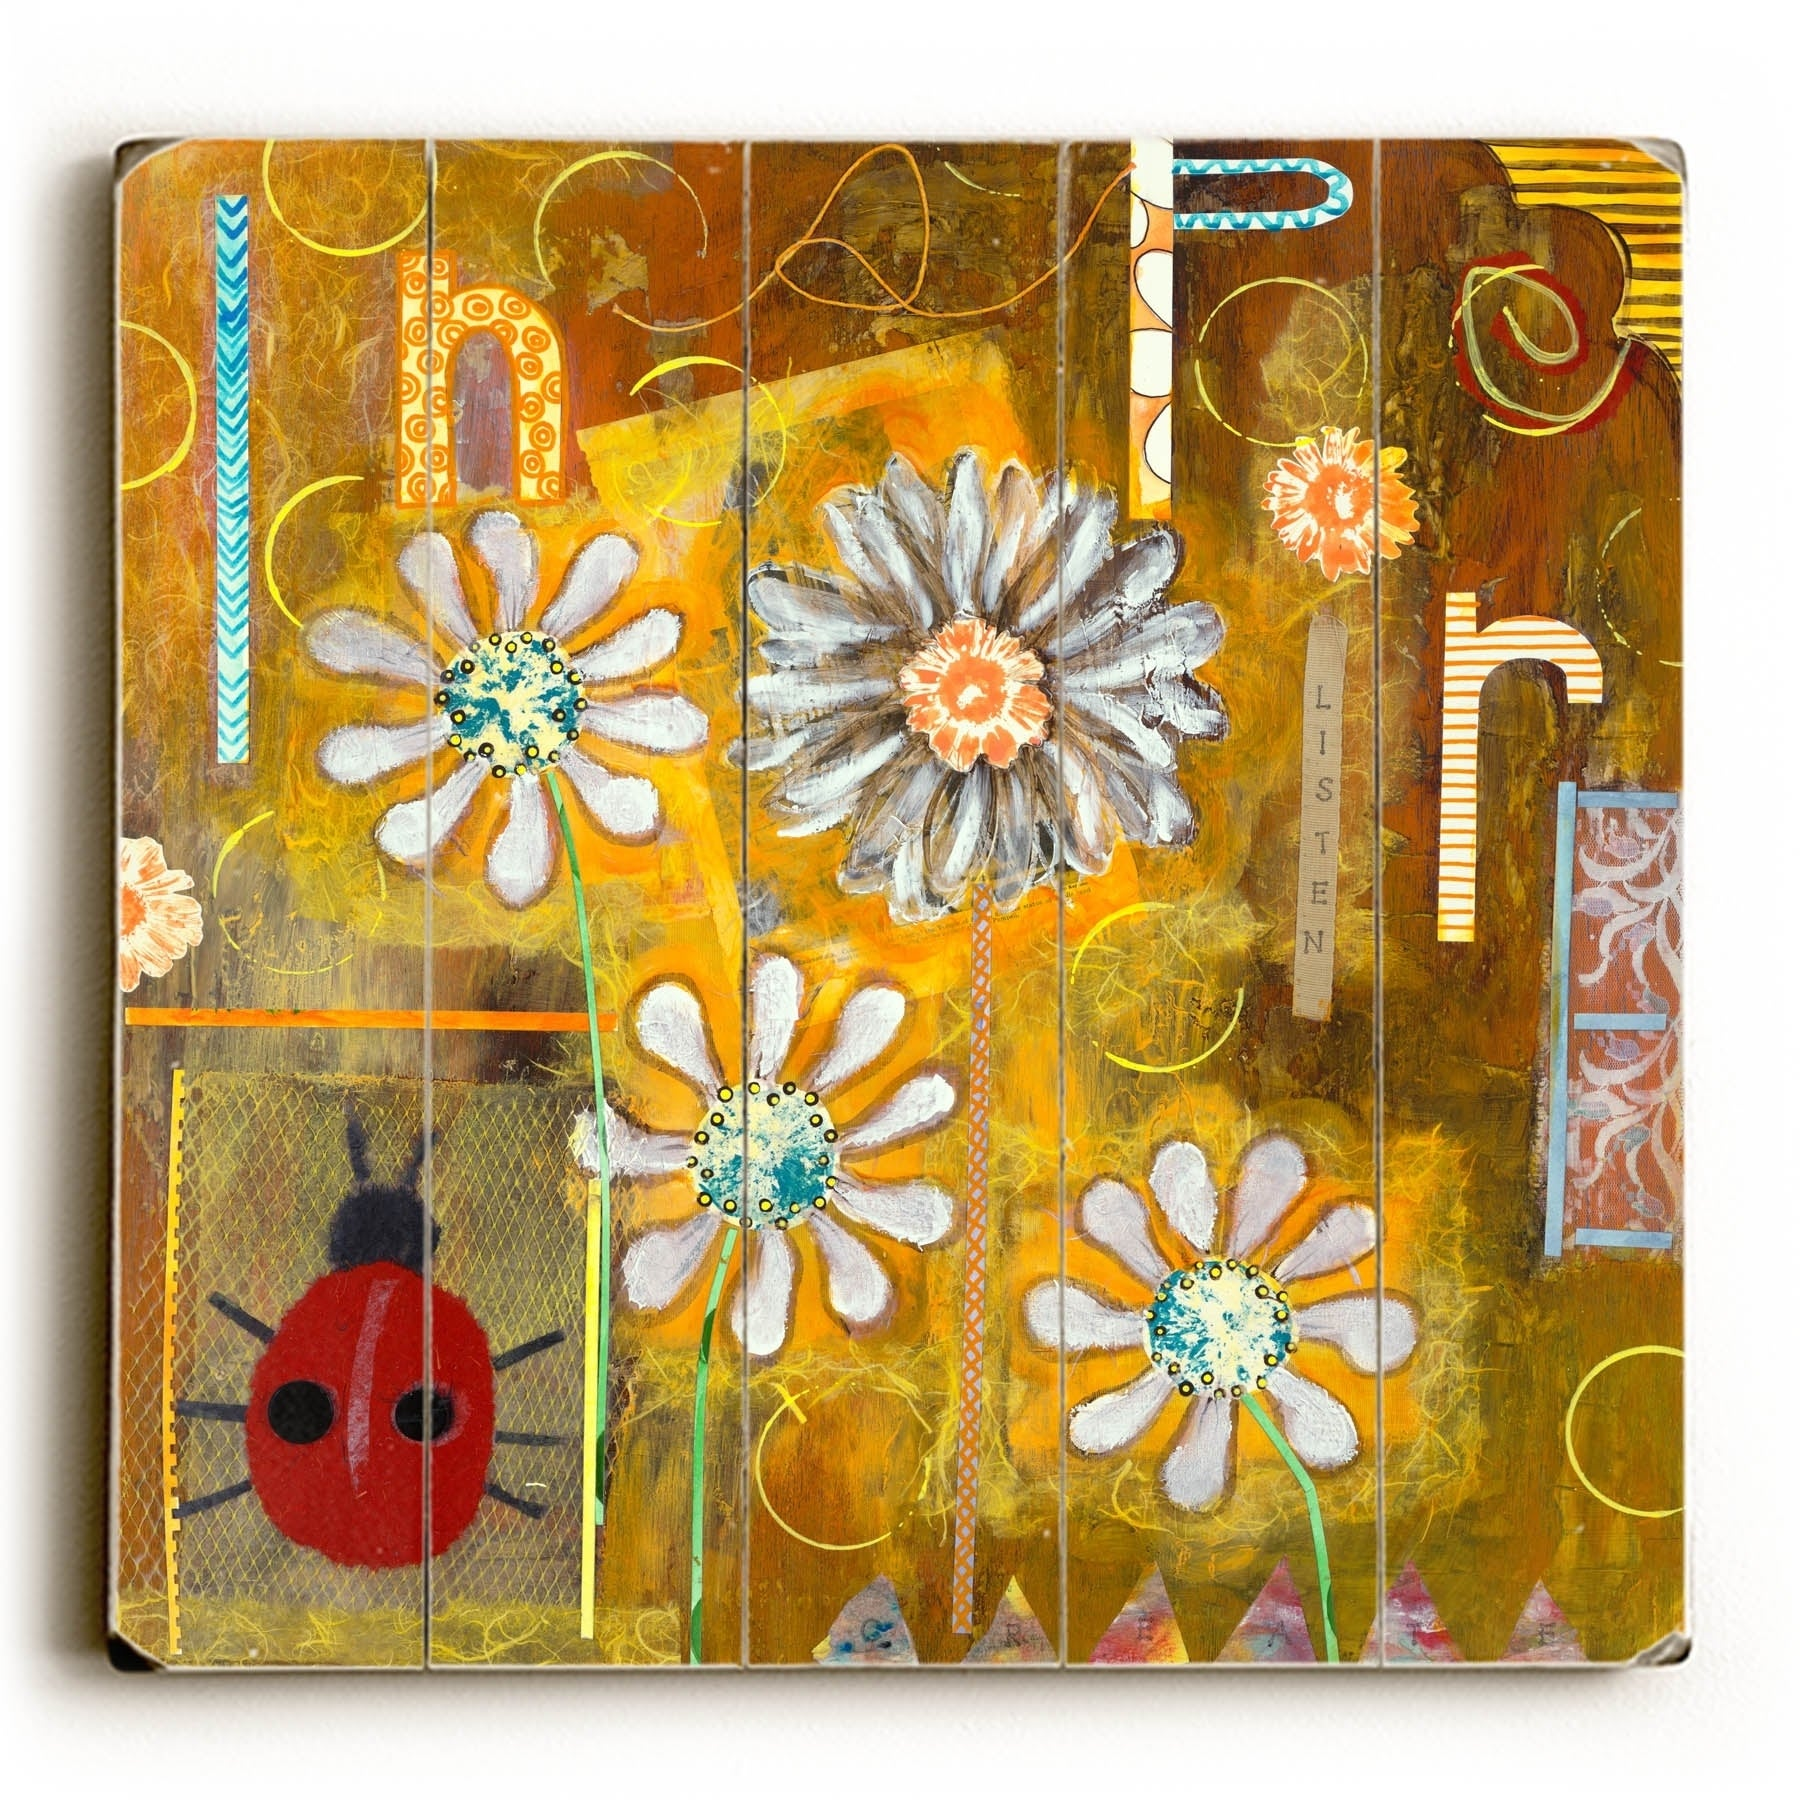 Shop Ladybug Collage - Planked Wood Wall Decor by KG Art Studio ...